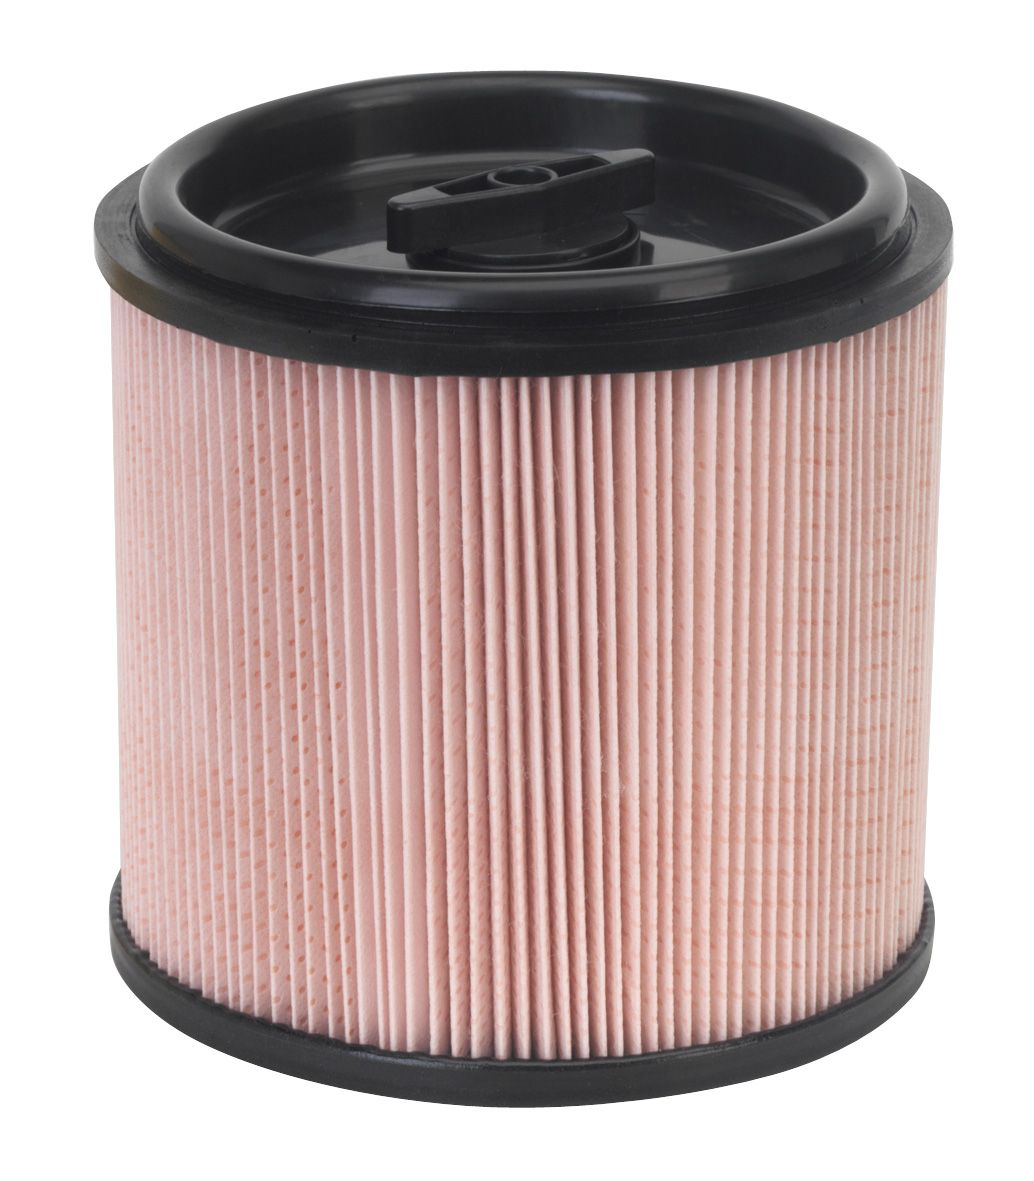 Sealey Cartridge Filter for Fine Dust for PC200 & PC300 Series